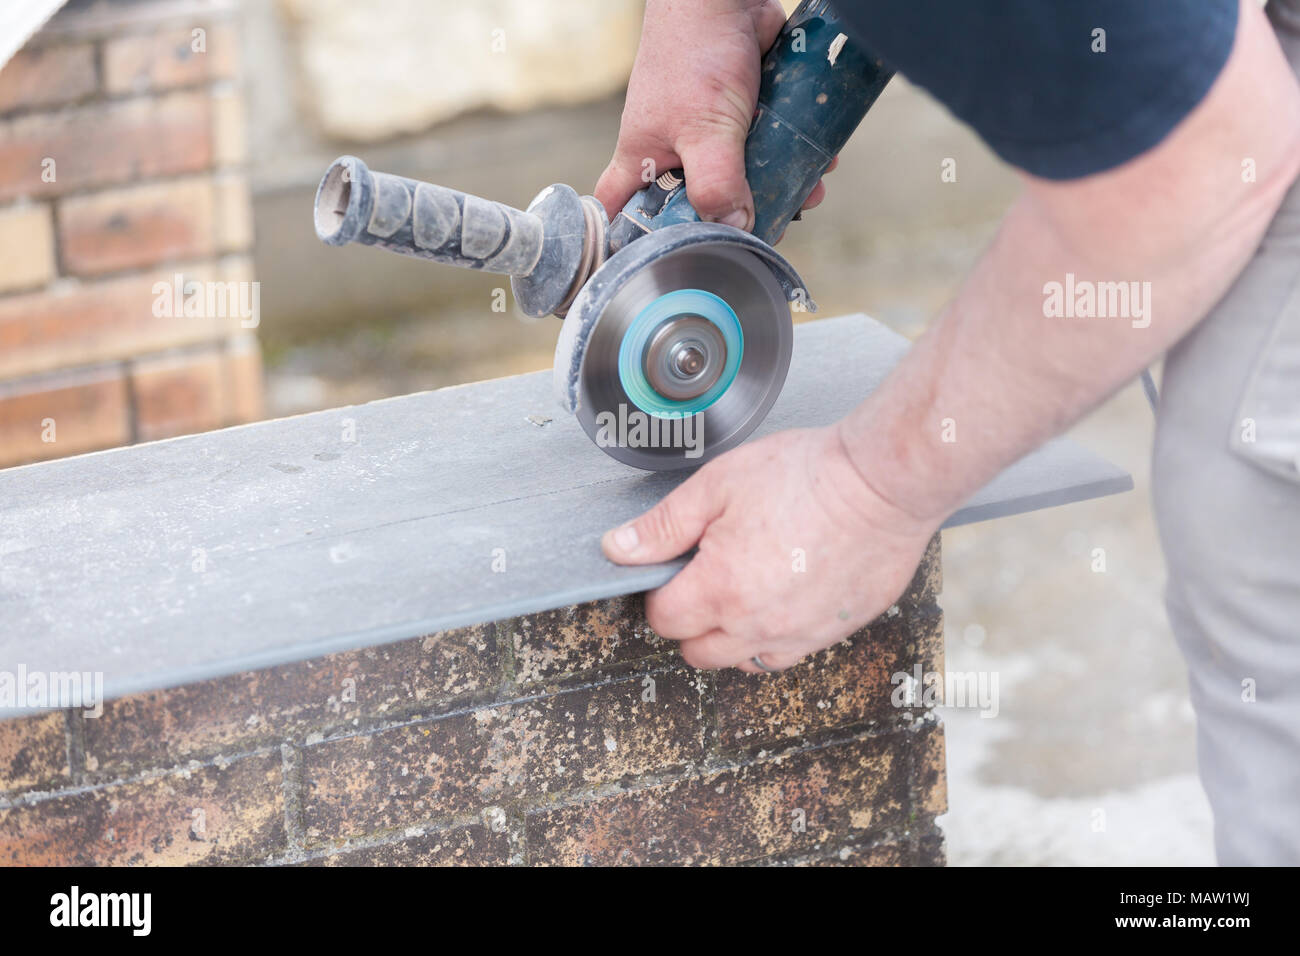 Electric tile cutter stock photos electric tile cutter stock tiler cutting a tile with a grinder stock image dailygadgetfo Choice Image